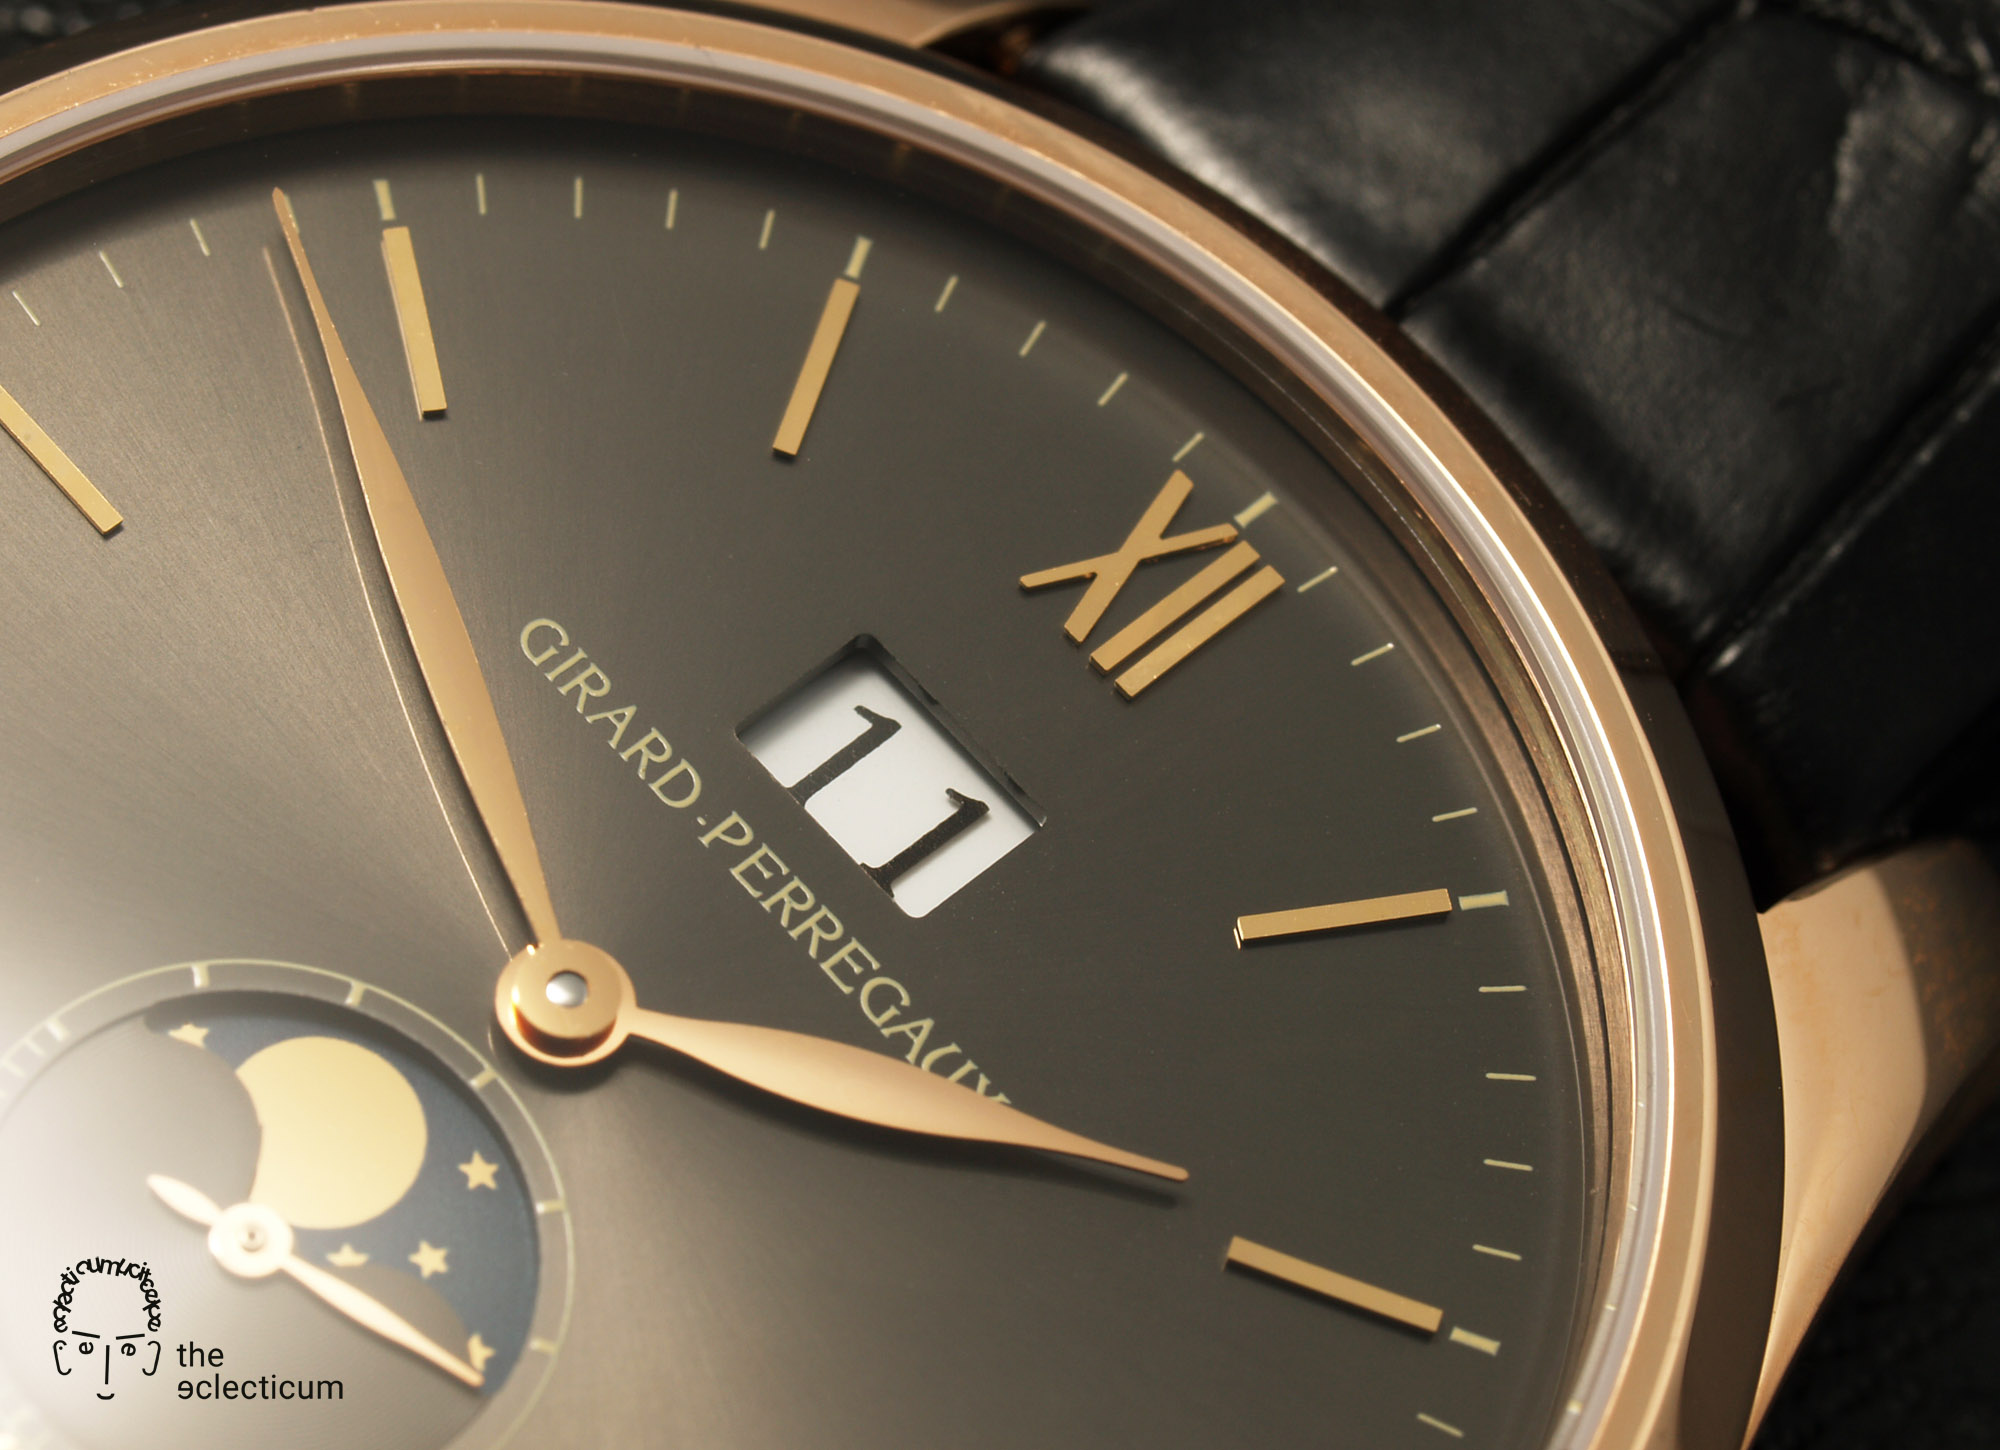 Girard-Perregaux Classique Elegance Ref. 49530 big date moonphase manufacture rose gold in-house